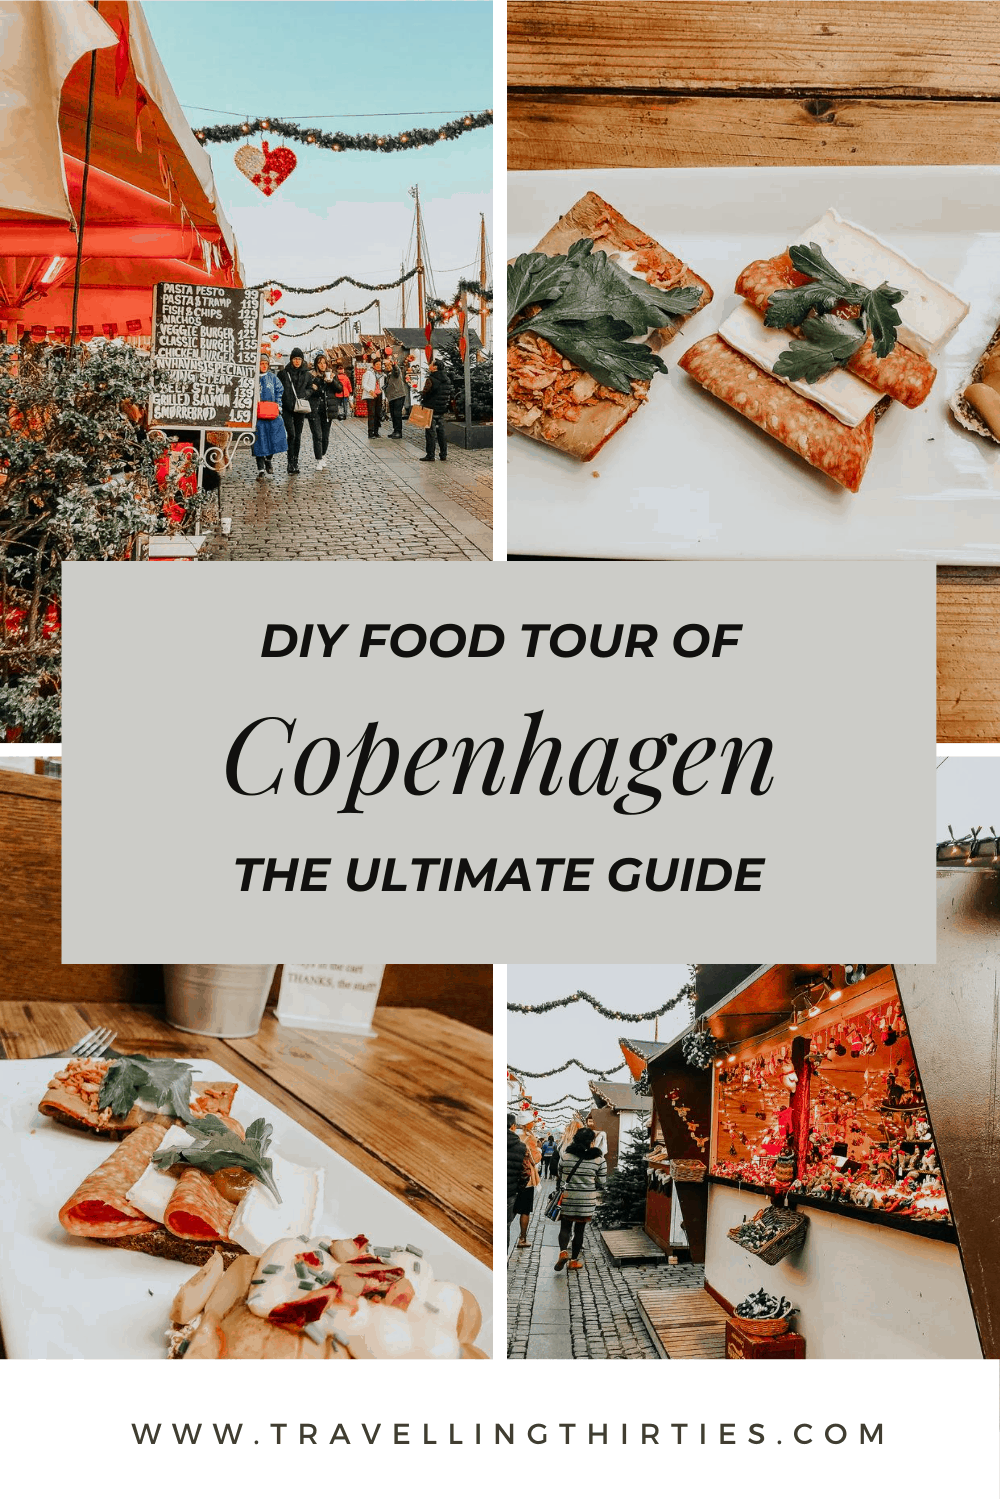 DIY Food Tour in Copenhagen